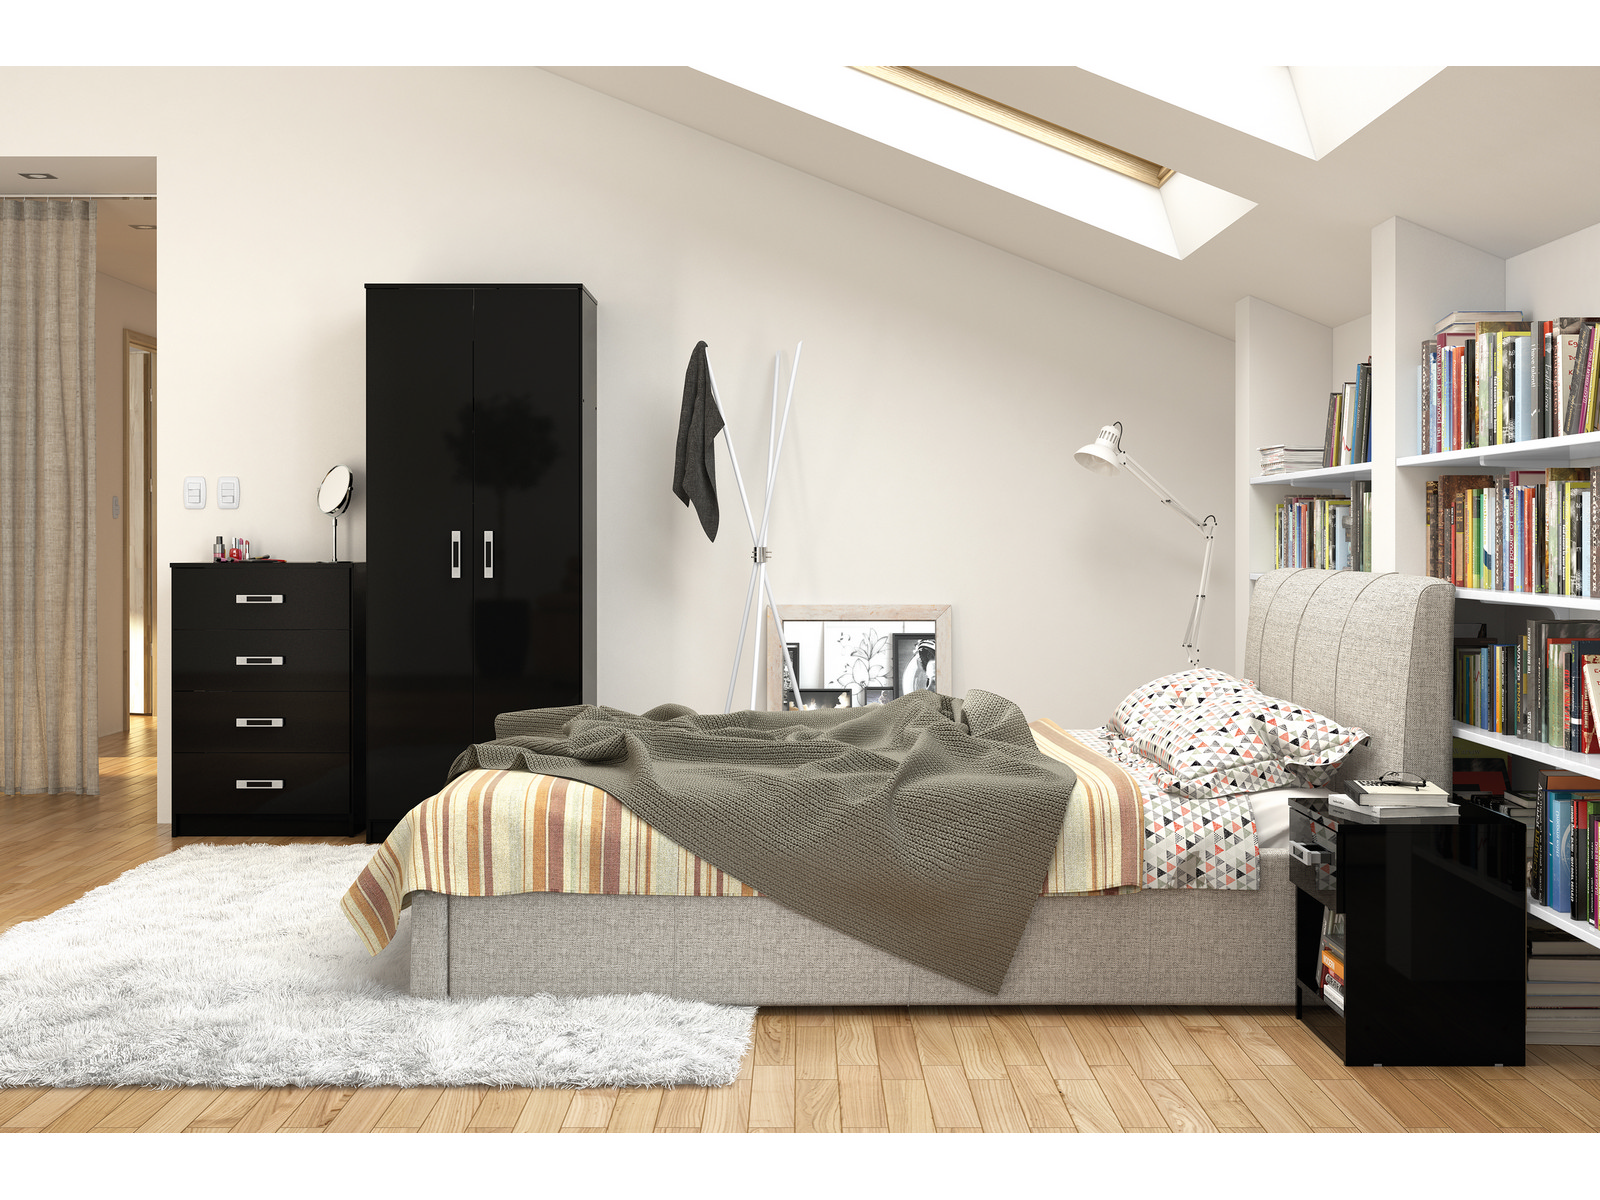 New Reflect Black High Gloss Trio Bedroom Furniture Set Wardrobe Chest Bedside Ebay